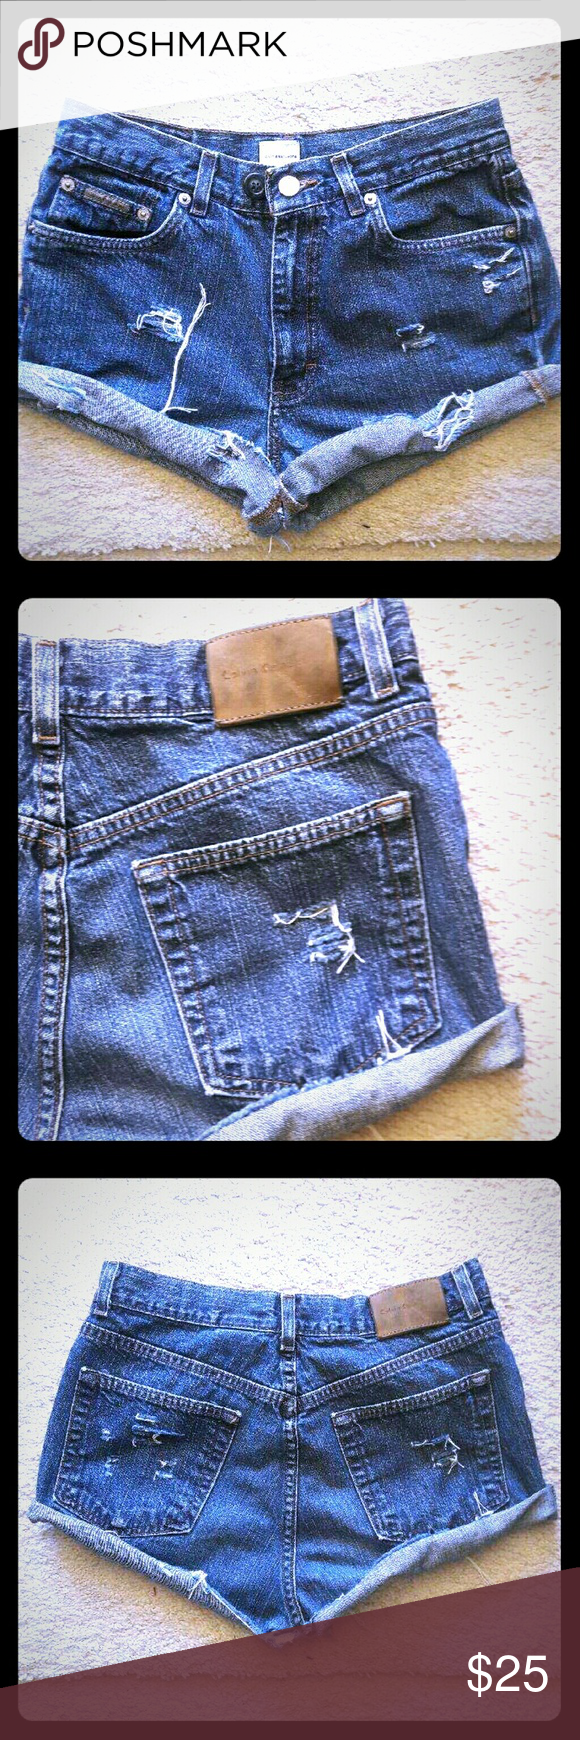 CALVIN CLIEN DESTROYED JEAN SHORTS ...SIZE 29 AWESOME CALVIN CLIEN DENIM JEAN SHORTS SIZE 29 WAIST, HAS SOME STRETCH.. JUST IN TIME FOR SPRING & SUMMER.. Calvin Klein Shorts Jean Shorts